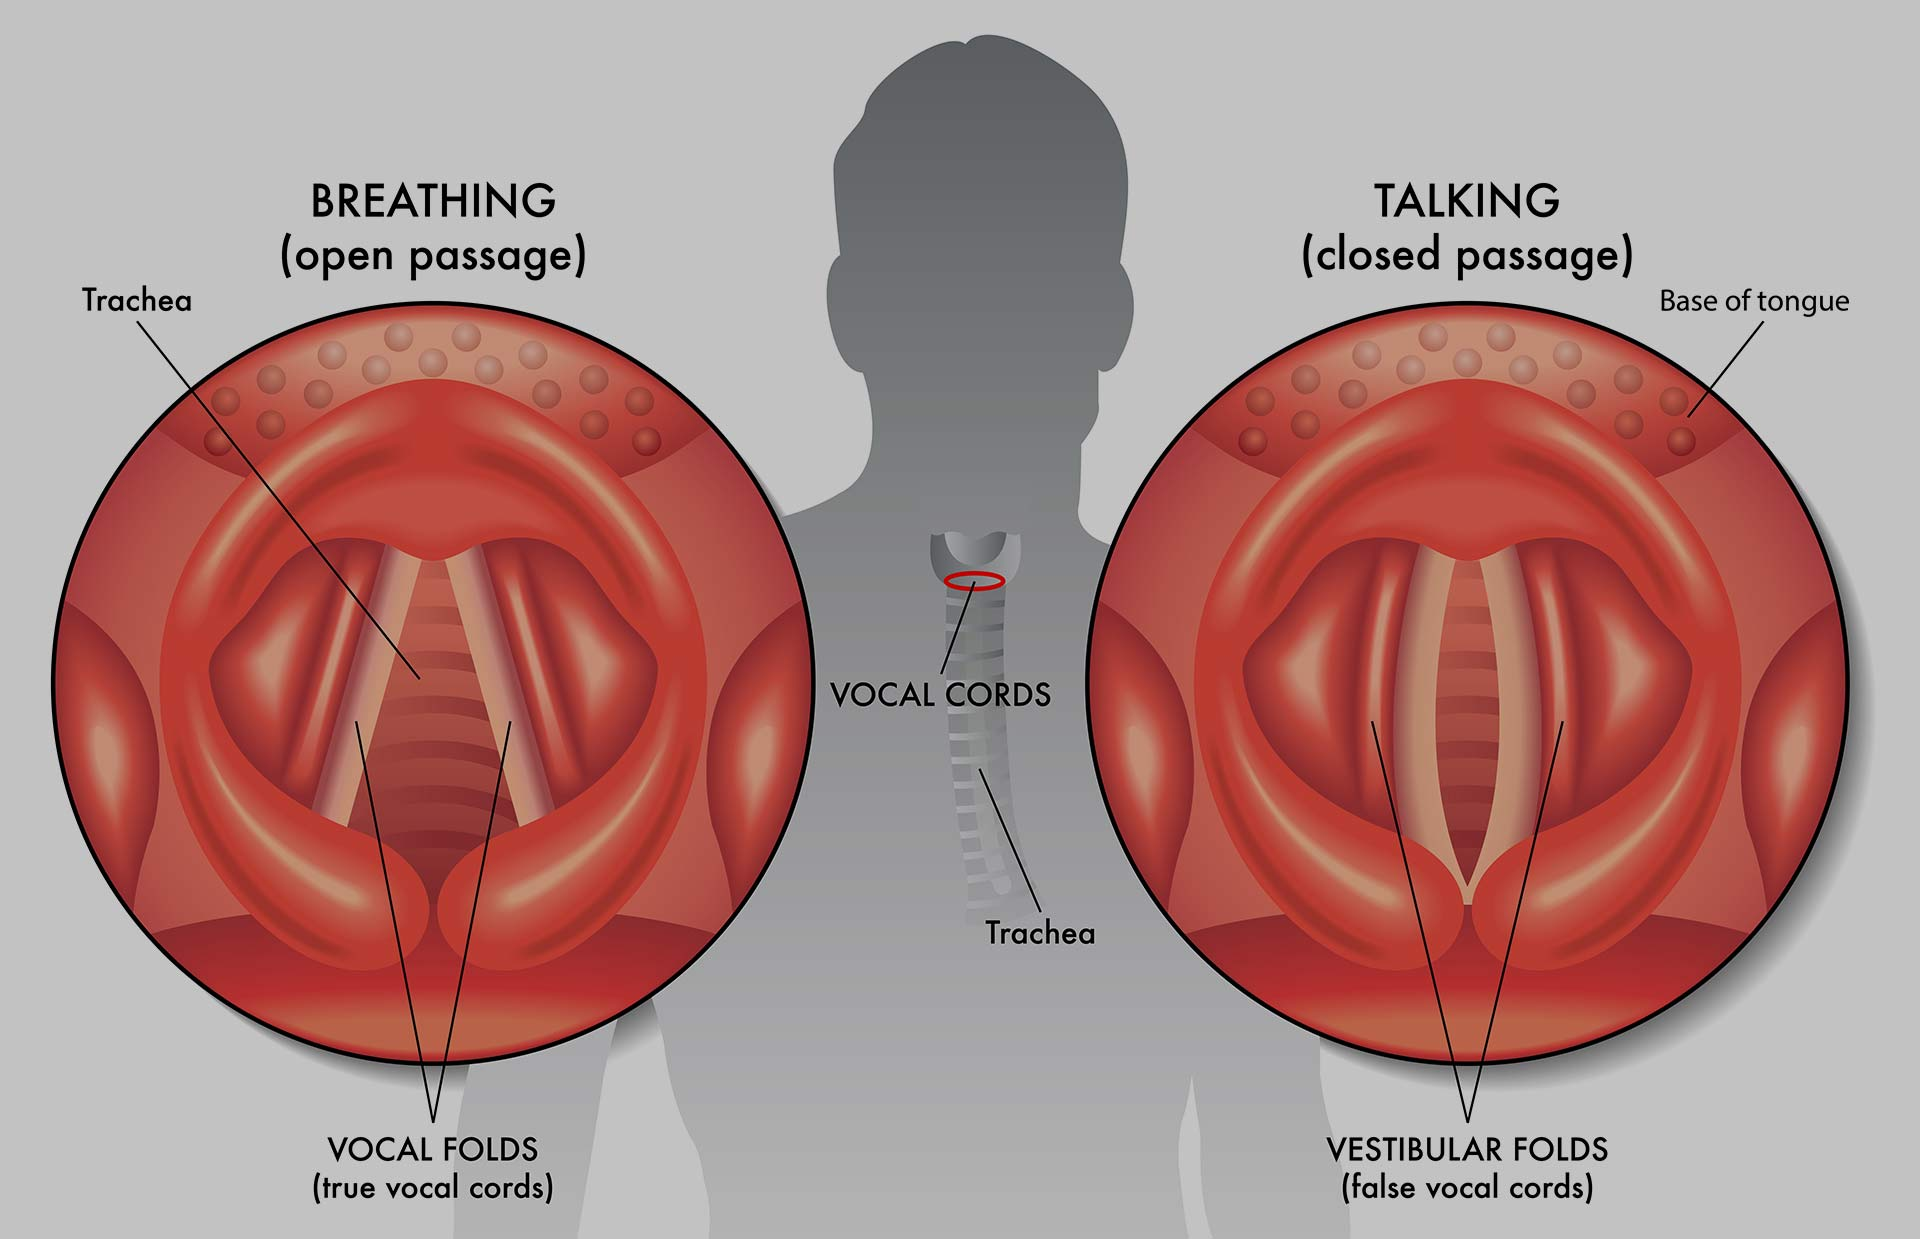 Vocal cords